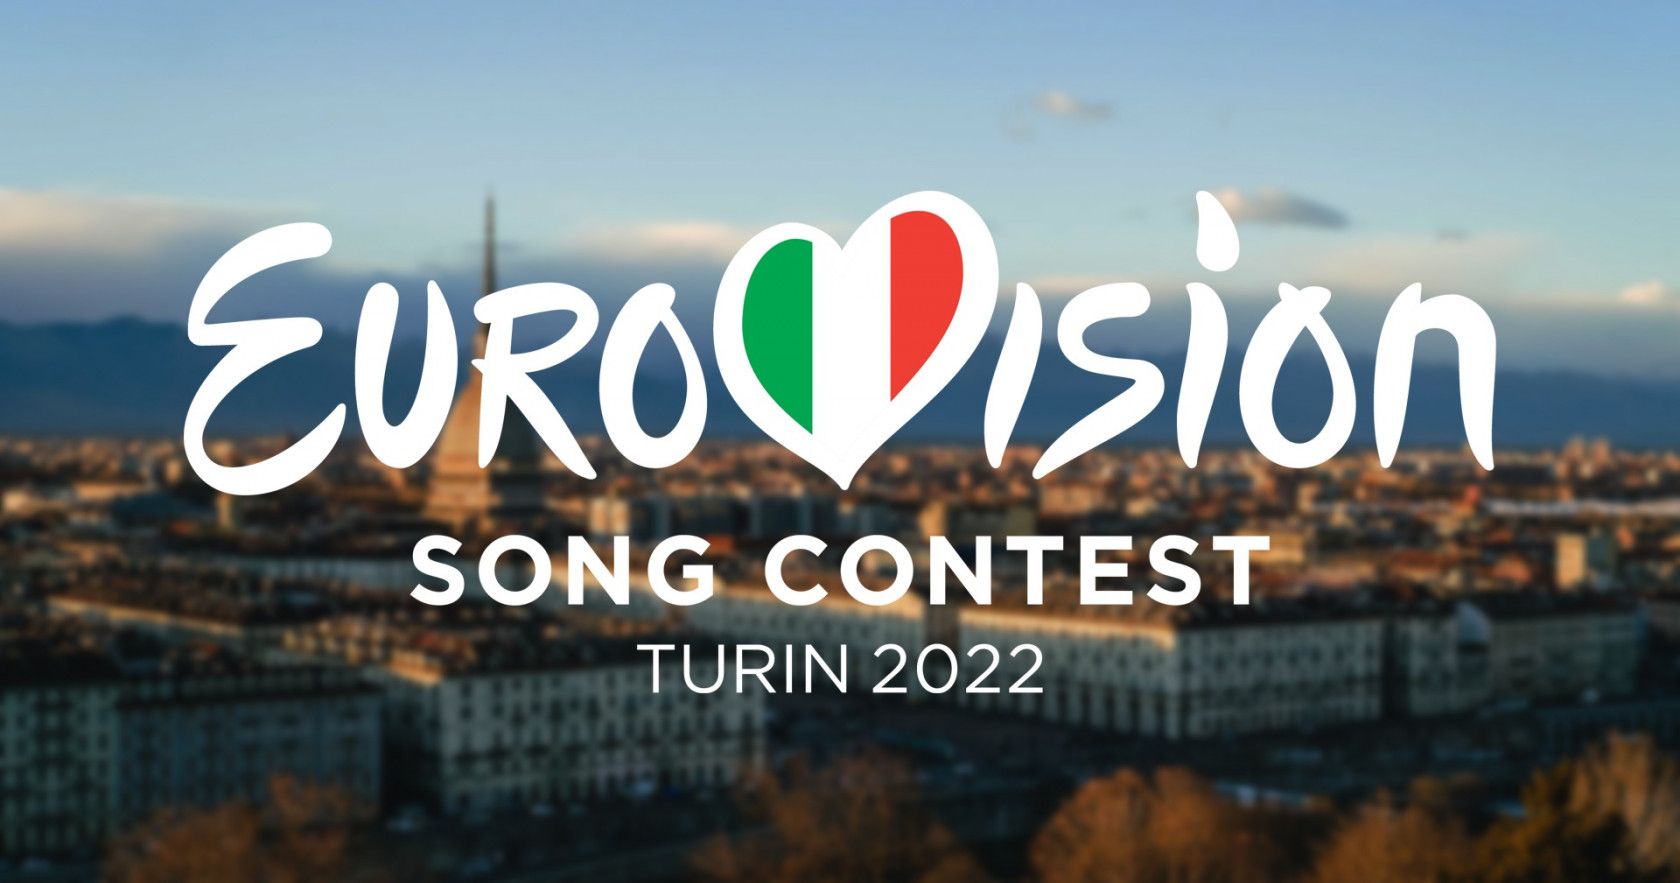 Turin, Italy, to host the 66th Eurovision Song Contest in May 2022